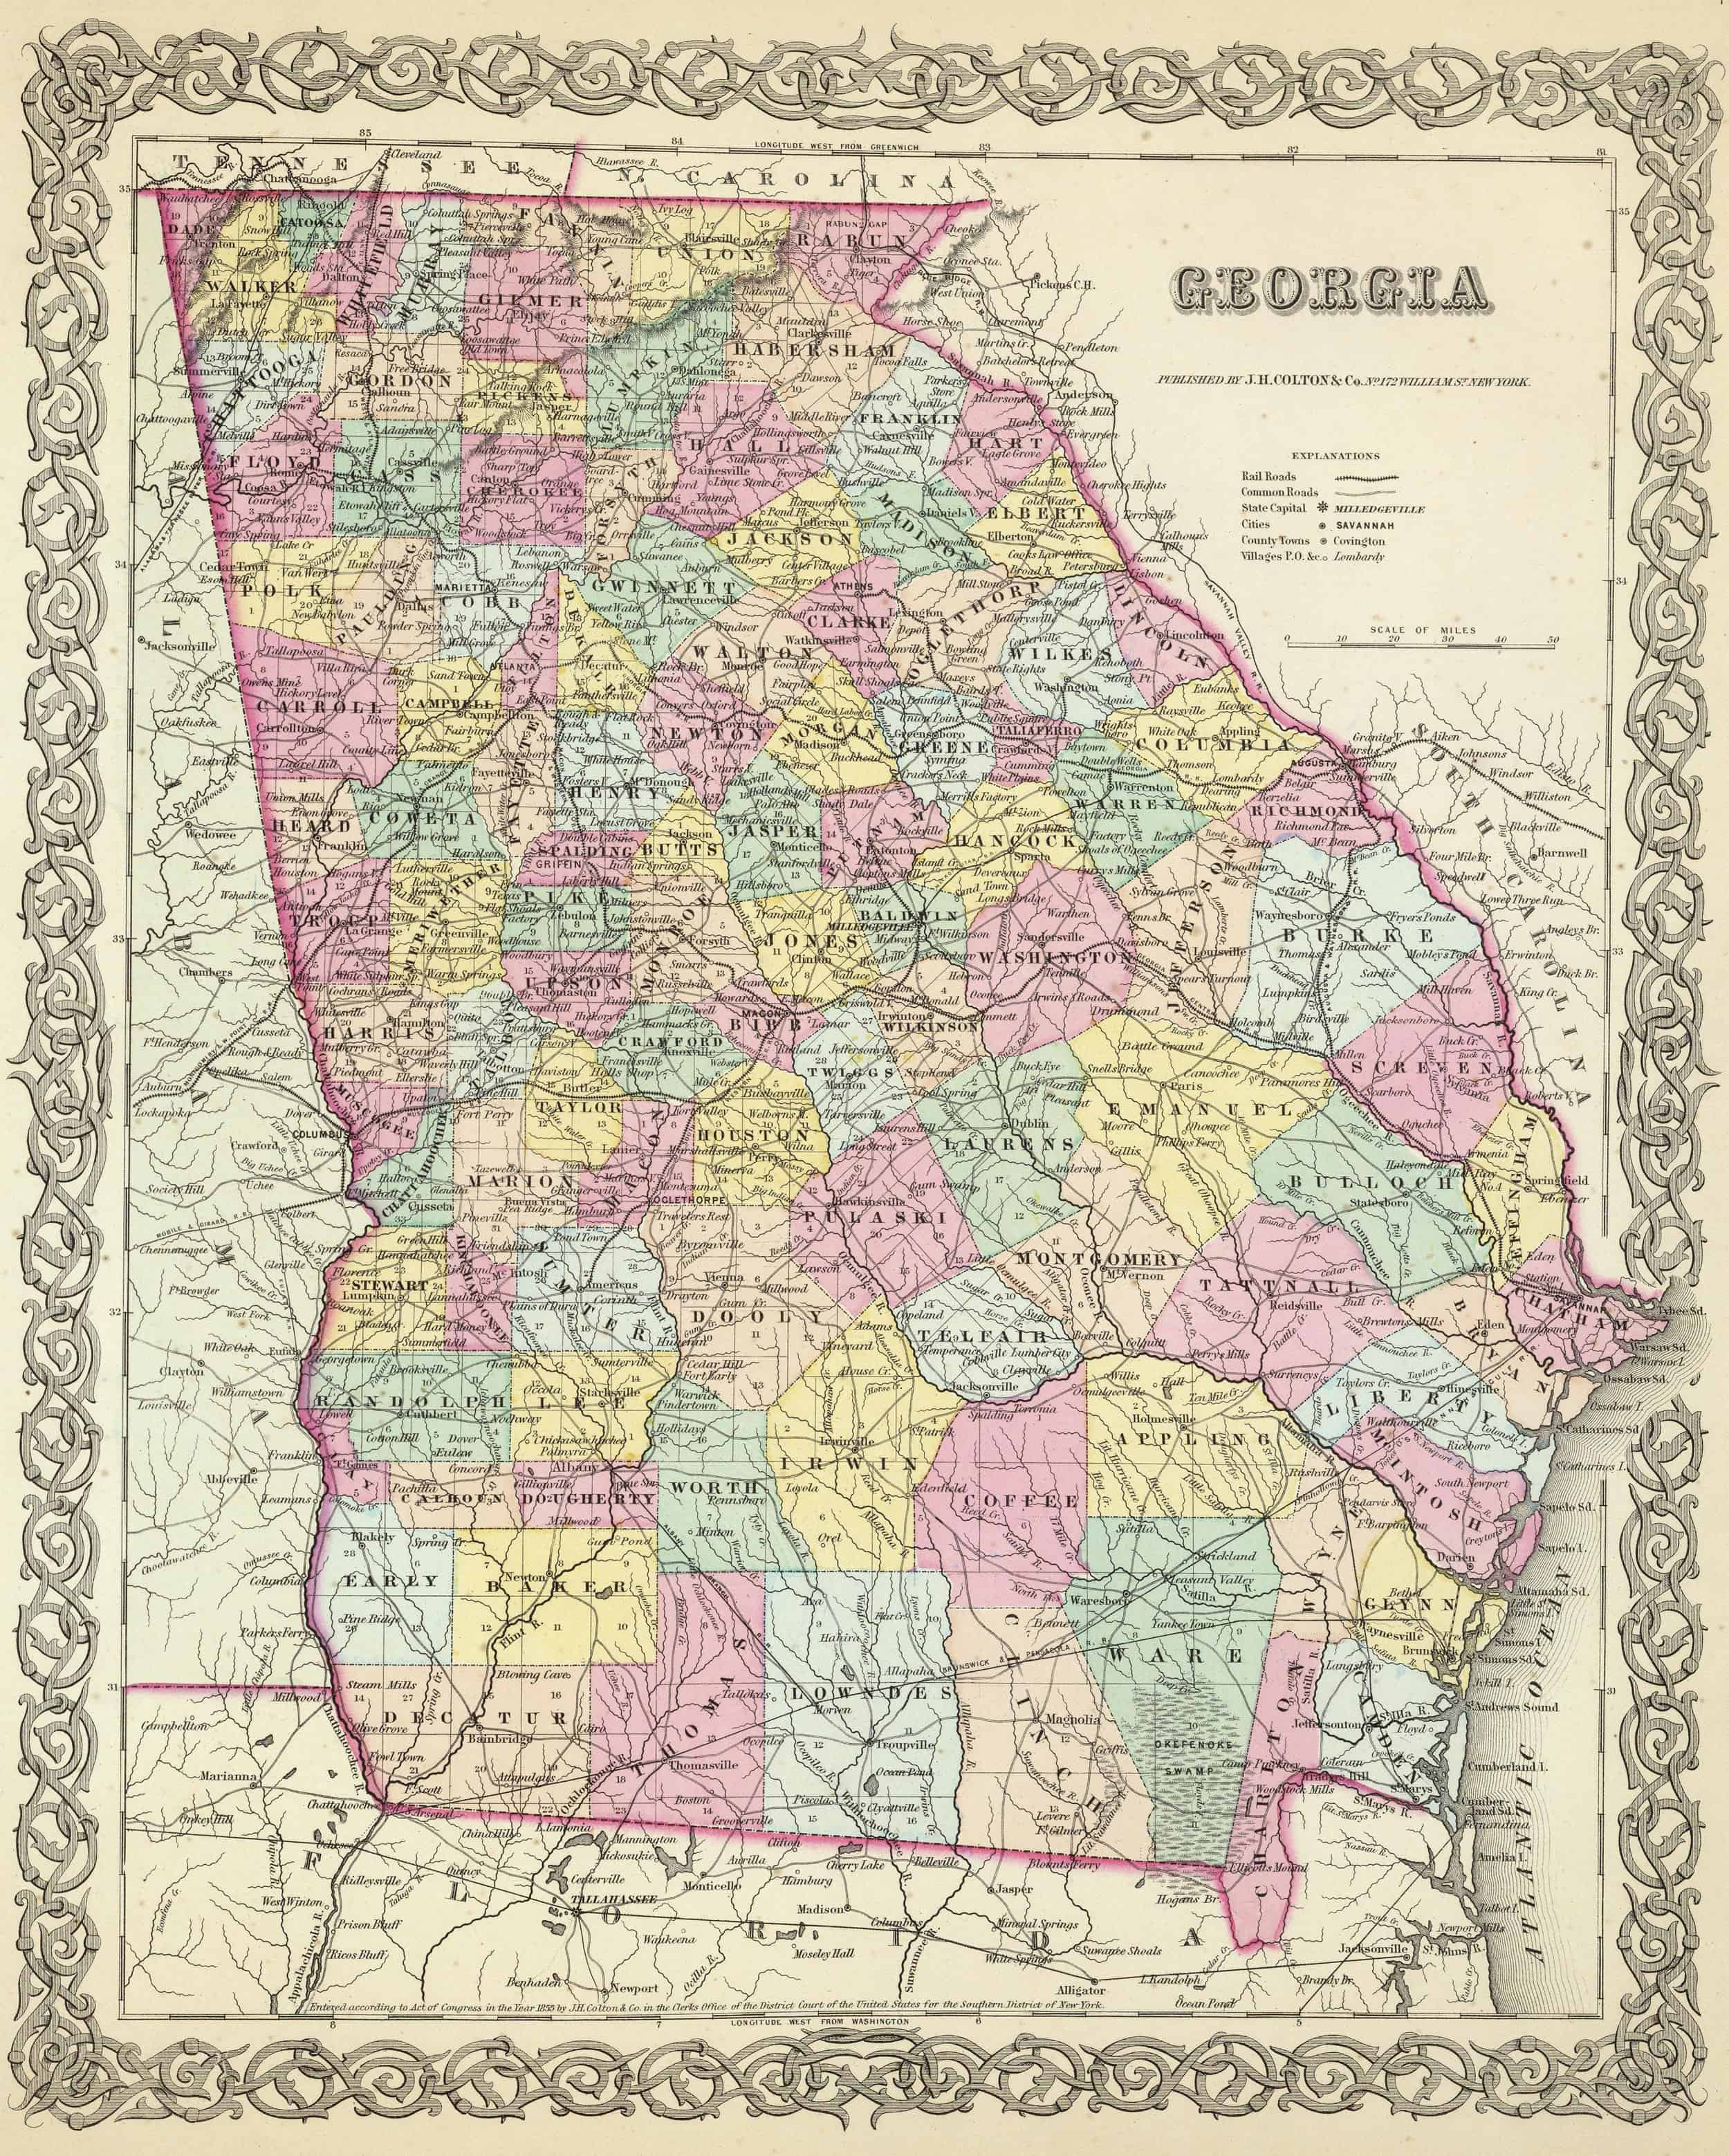 Old Historical City, County and State Maps of Georgia on ga map, murray county georgia map, georgia map with county lines, haralson county georgia map, georgia map usa, cobb county georgia map, georgia highway map, georgia county map by zip code, georgia economy map, georgia business map, georgia county map printable, georgia town map, georgia cities, georgia regions, georgia capitals map, atlanta map, georgia and russia map, georgia lakes map, georgia states map, georgia indian trails map,